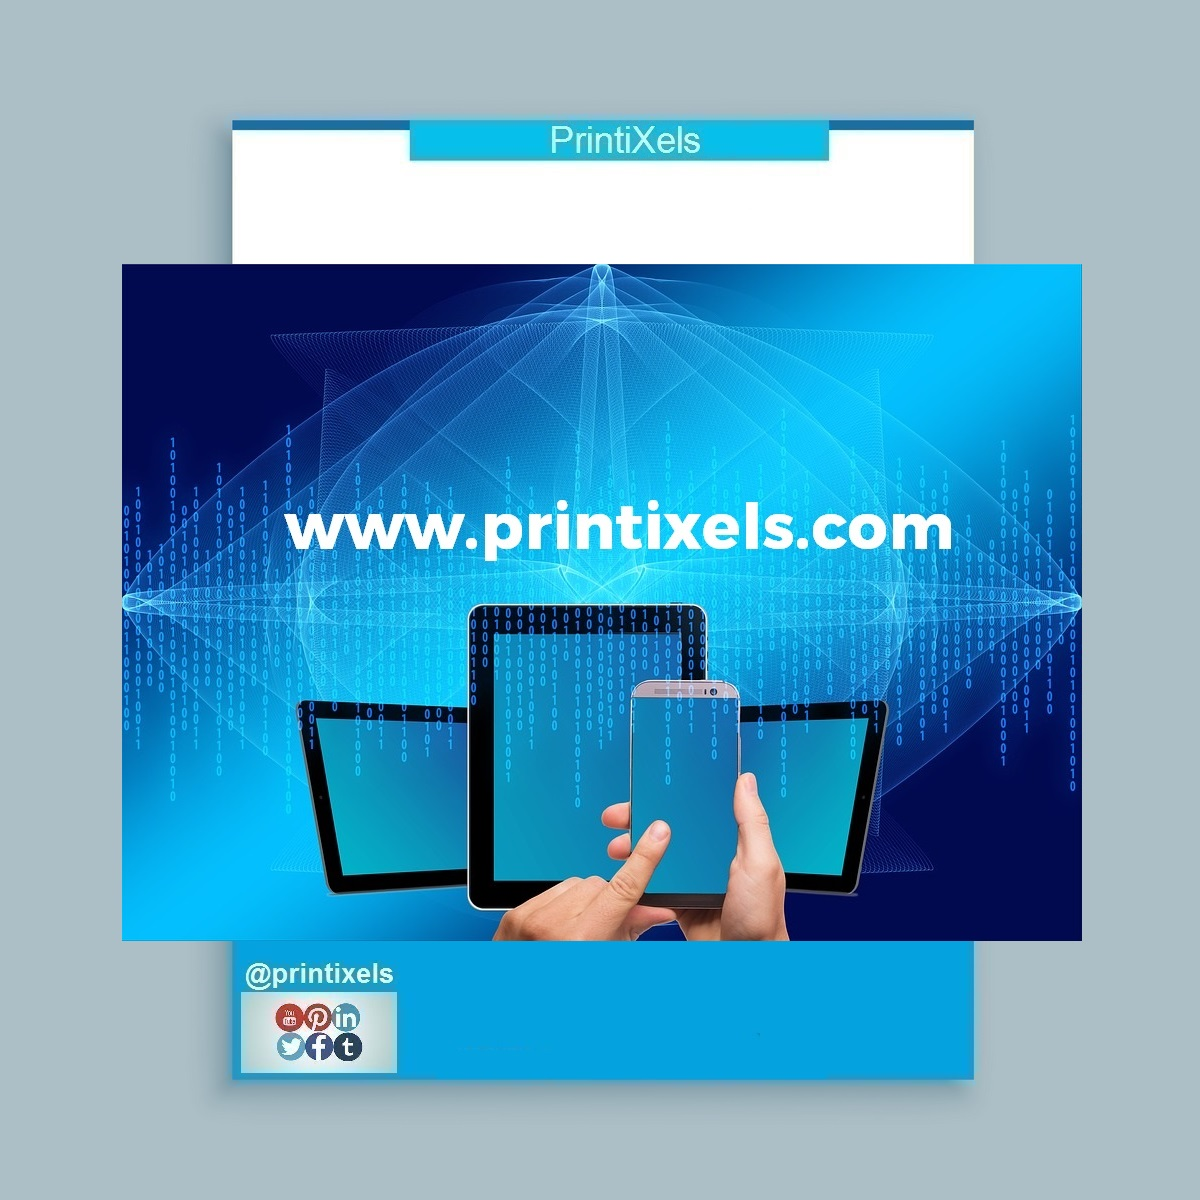 PrintiXels Announces New Website Launch